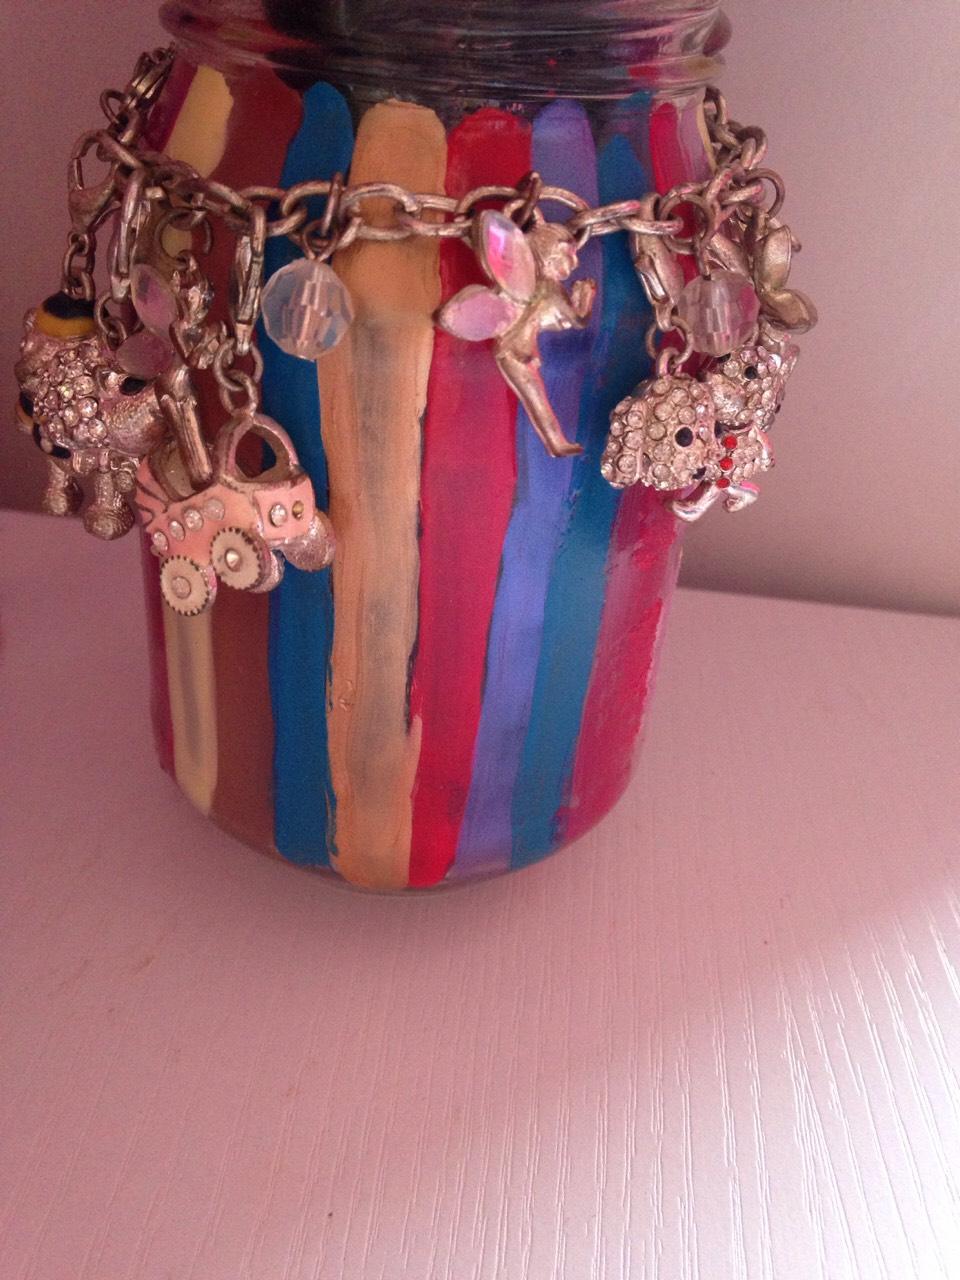 Get an old pot and put a bracelet around it to look cute